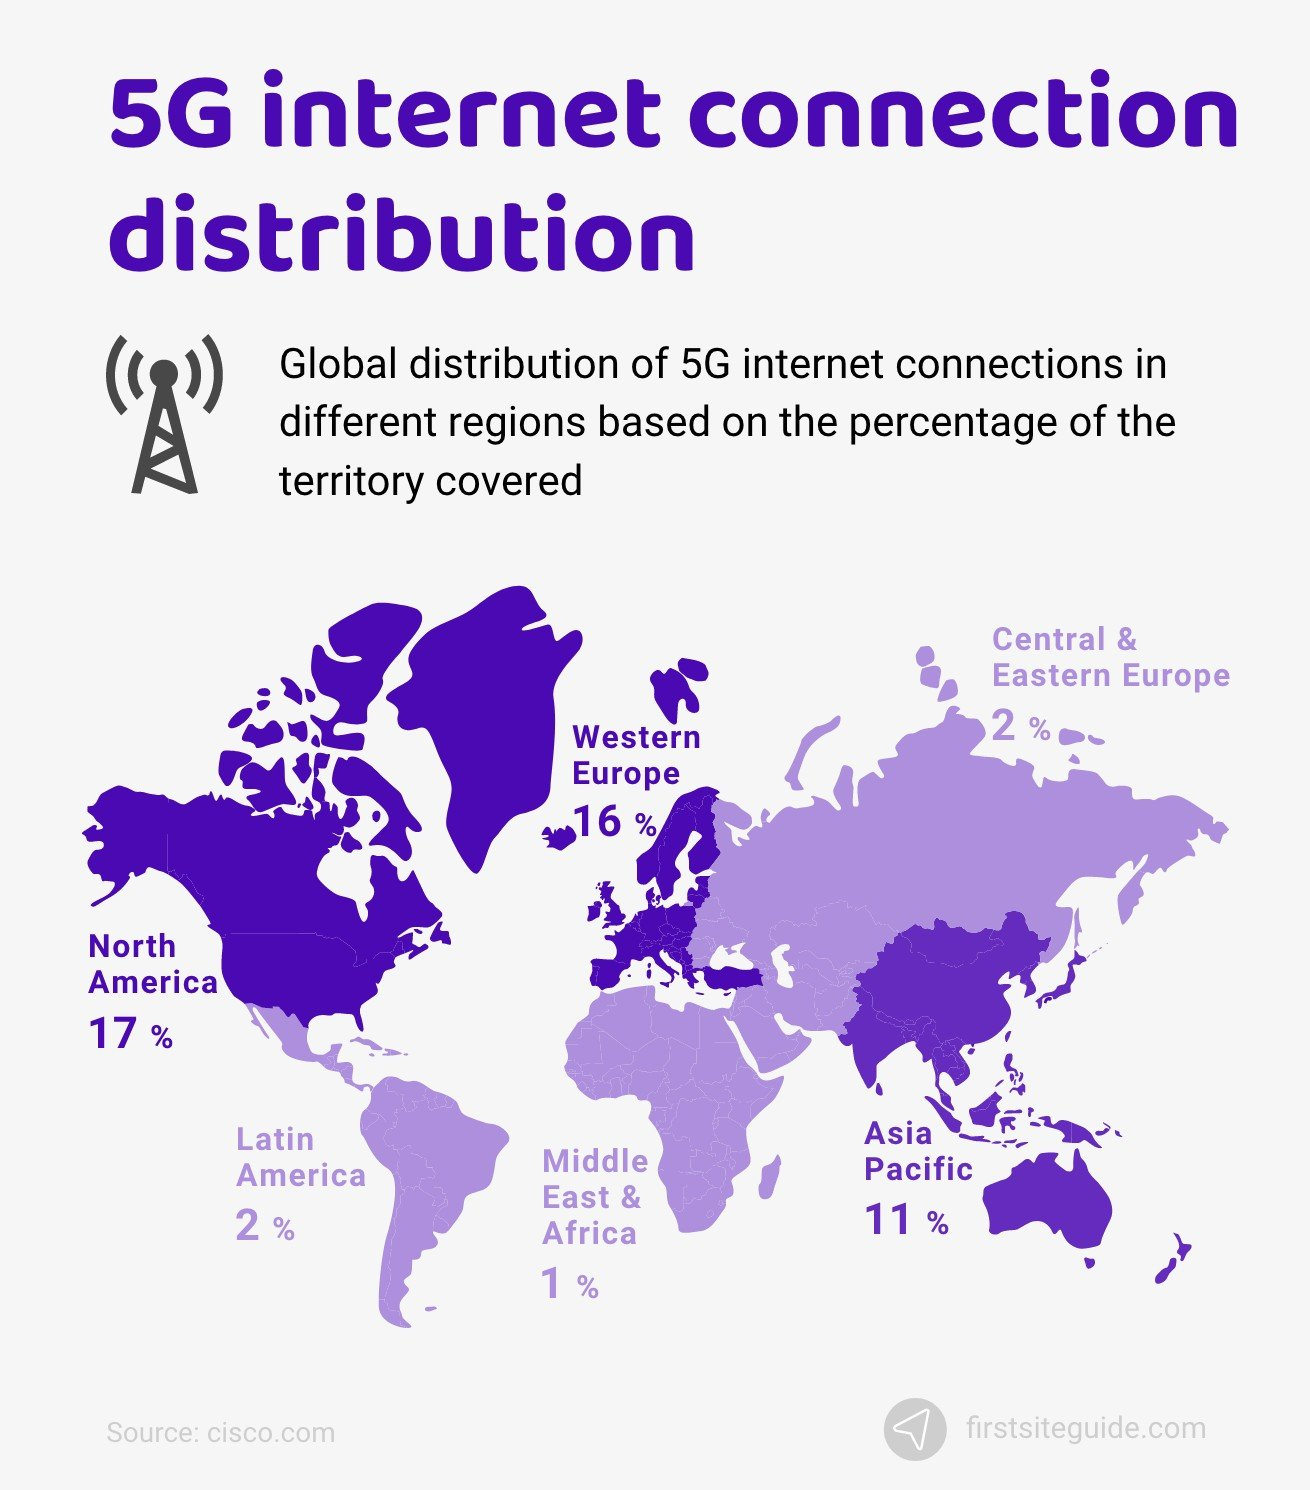 5G internet connection distribution